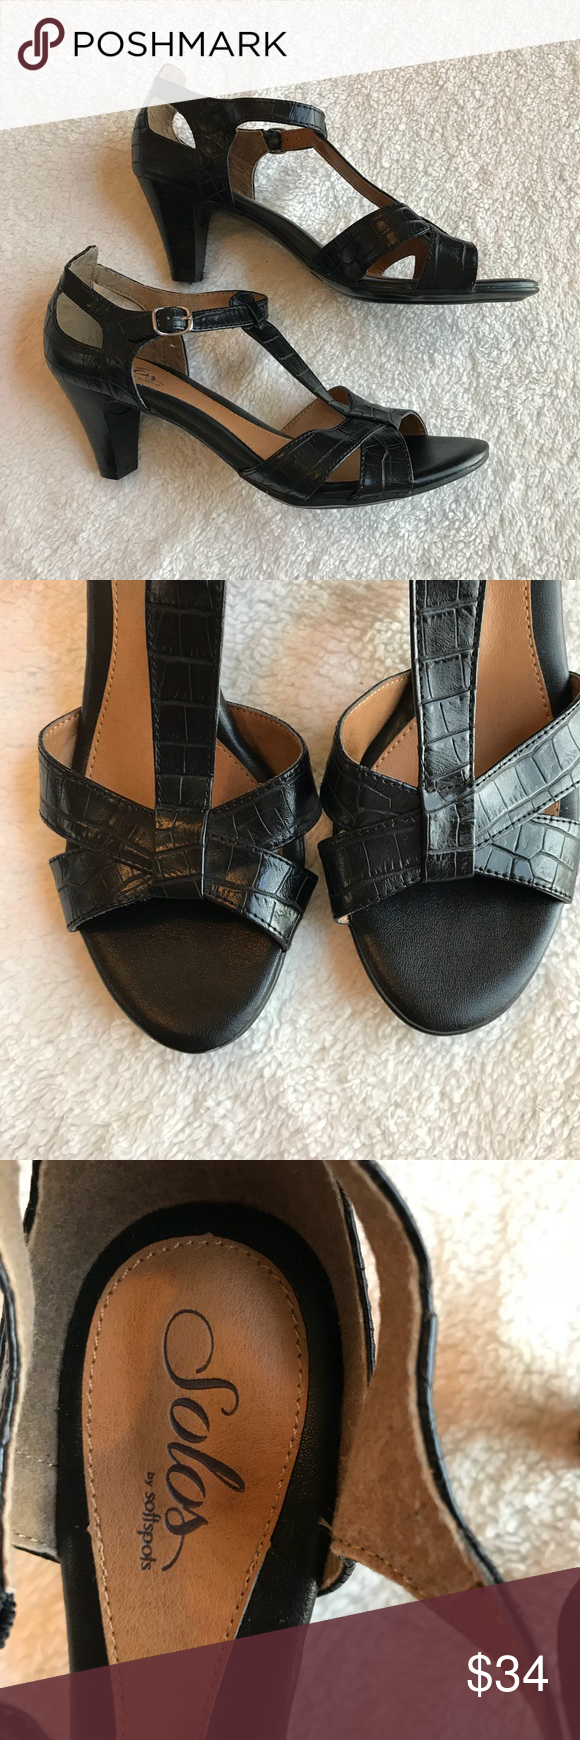 36e2eb2919 Solos by soft spots black pumps Excellent condition Softspots Shoes  Platforms